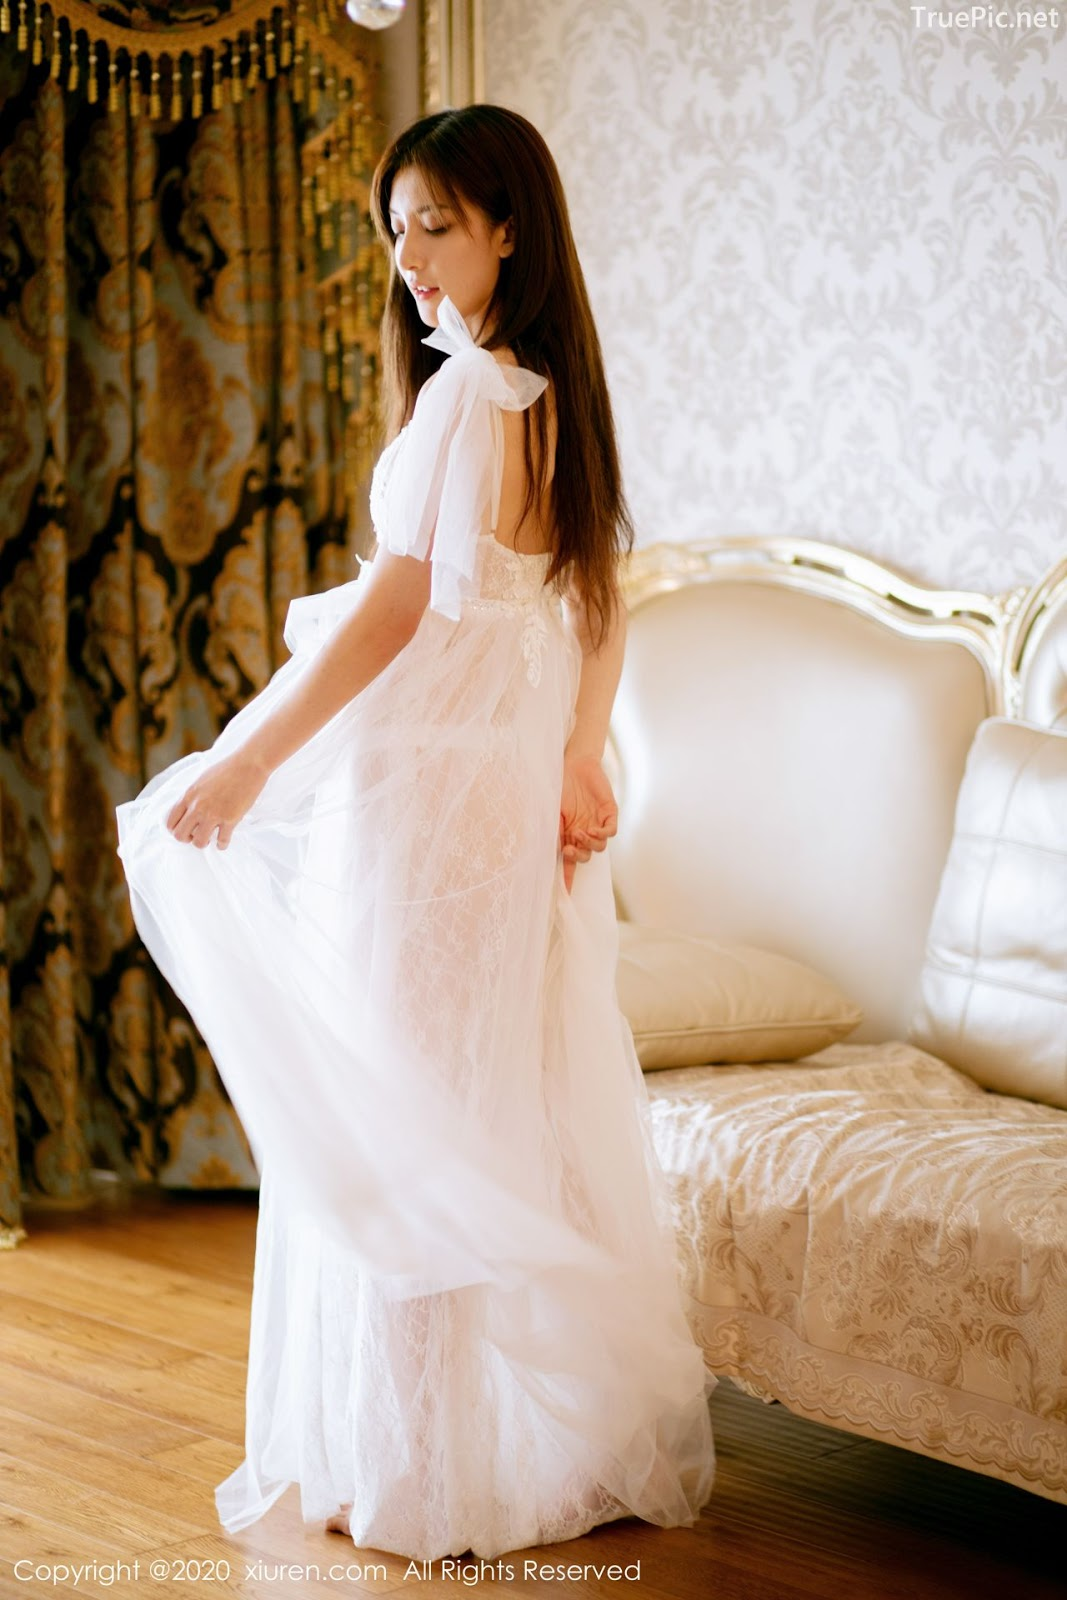 XIUREN No.1914 - Chinese model 林文文Yooki so Sexy with Transparent White Lace Dress - Picture 5